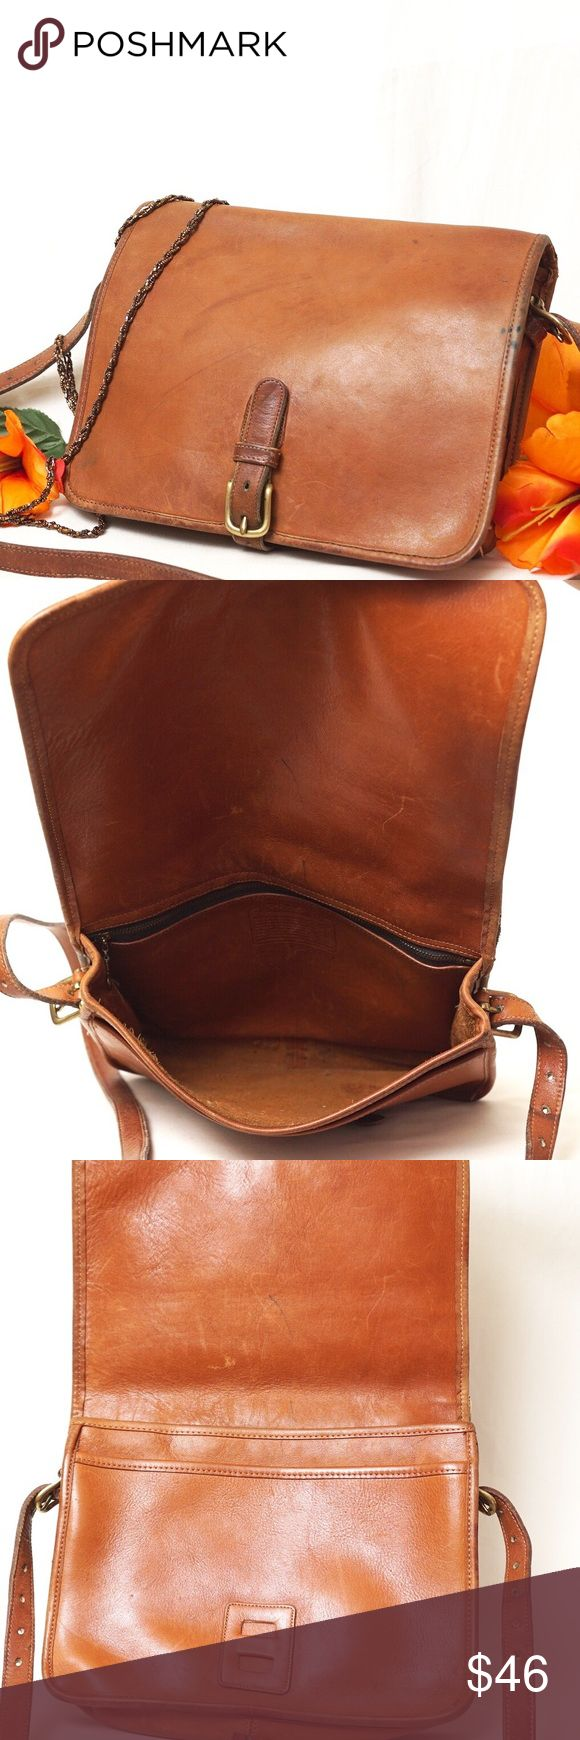 """COACH VINTAGE BROWN LEATHER CROSSBODY BAG Beautiful style. Preloved in used vintage condition as pictured. This is one of the most beautiful thing your vintage collection will have. Excellent bag for daily use. Size 10""""x8""""x3,5"""". Pet smoke free home.  AUTHENTIC❣️LEATHER ❣️FAST SHIPPING!  ⏳My items sell fast. Get them before gone.⌛️Please see my other listings. Bundle & save.. I have over 200 different  listings with more to come.🎯 Coach Bags Crossbody Bags"""